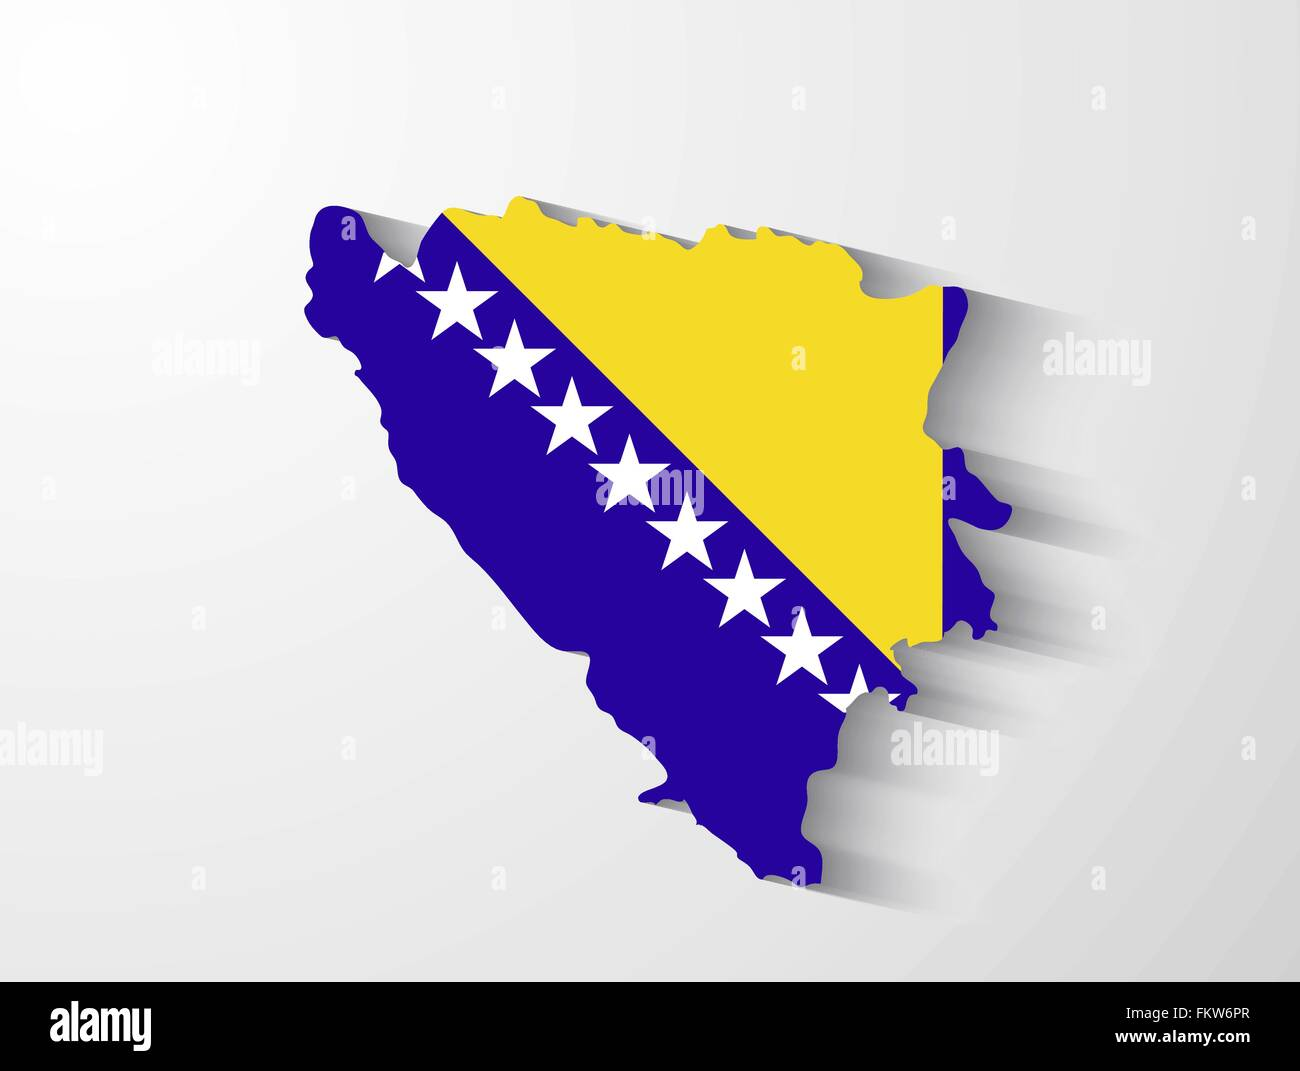 Bosnia and Herzegovina country map with flag and shadow effect - Stock Vector